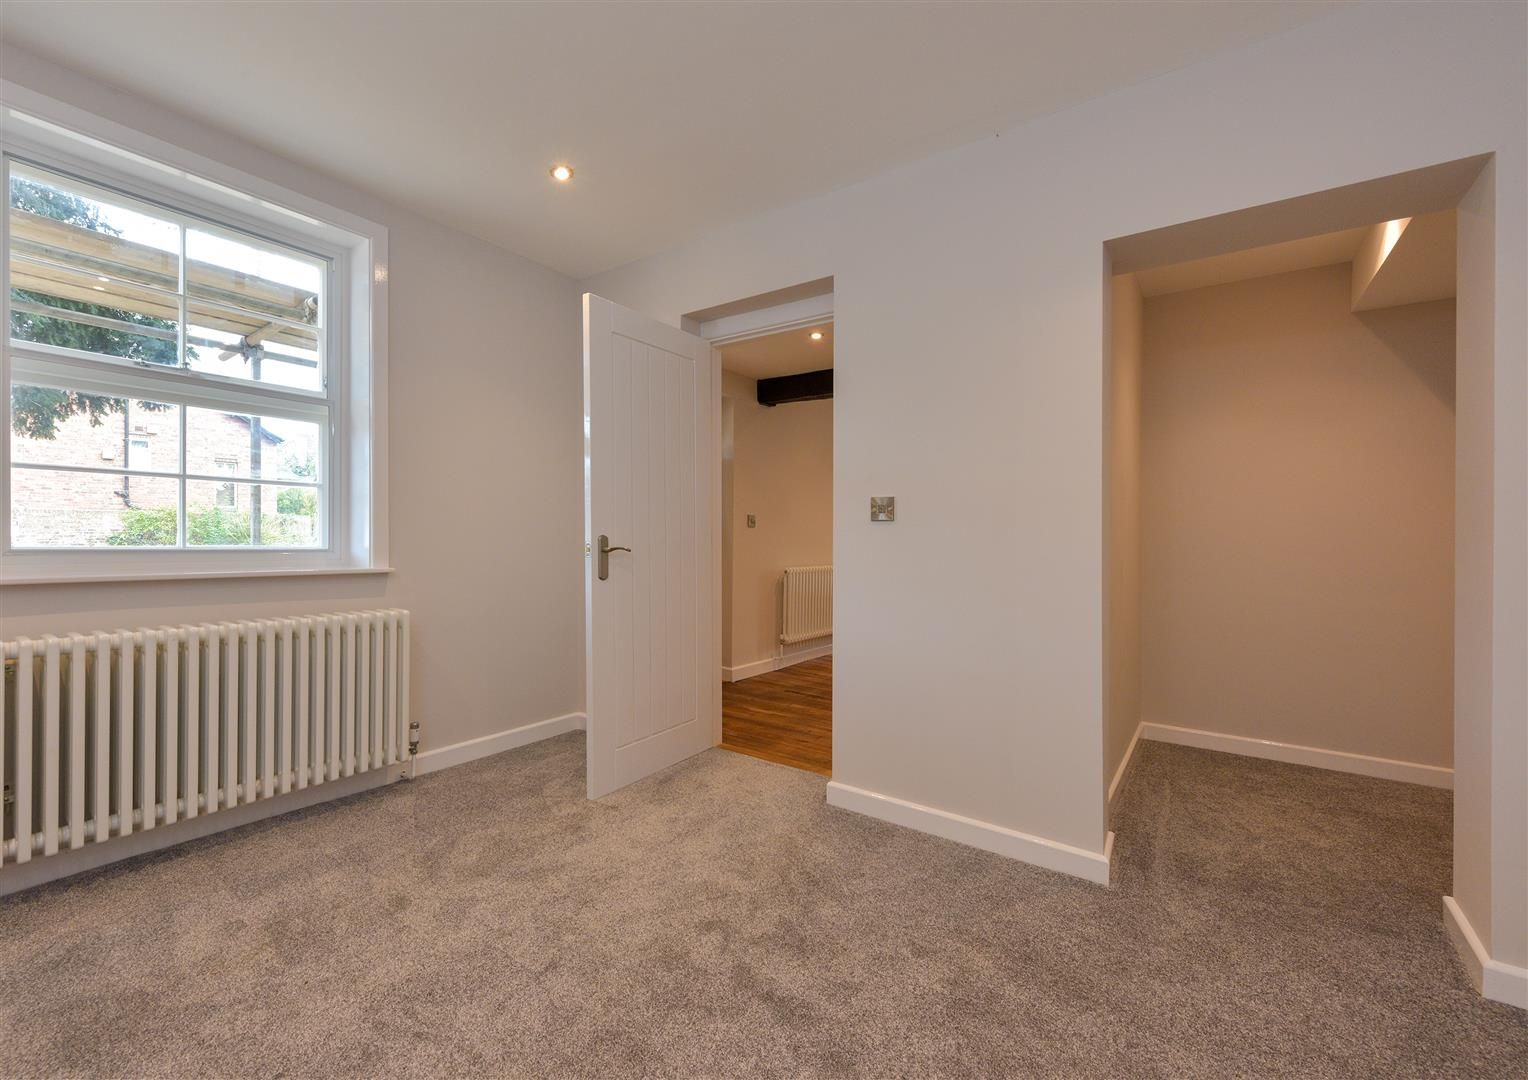 2 bed apartment for sale  - Property Image 14